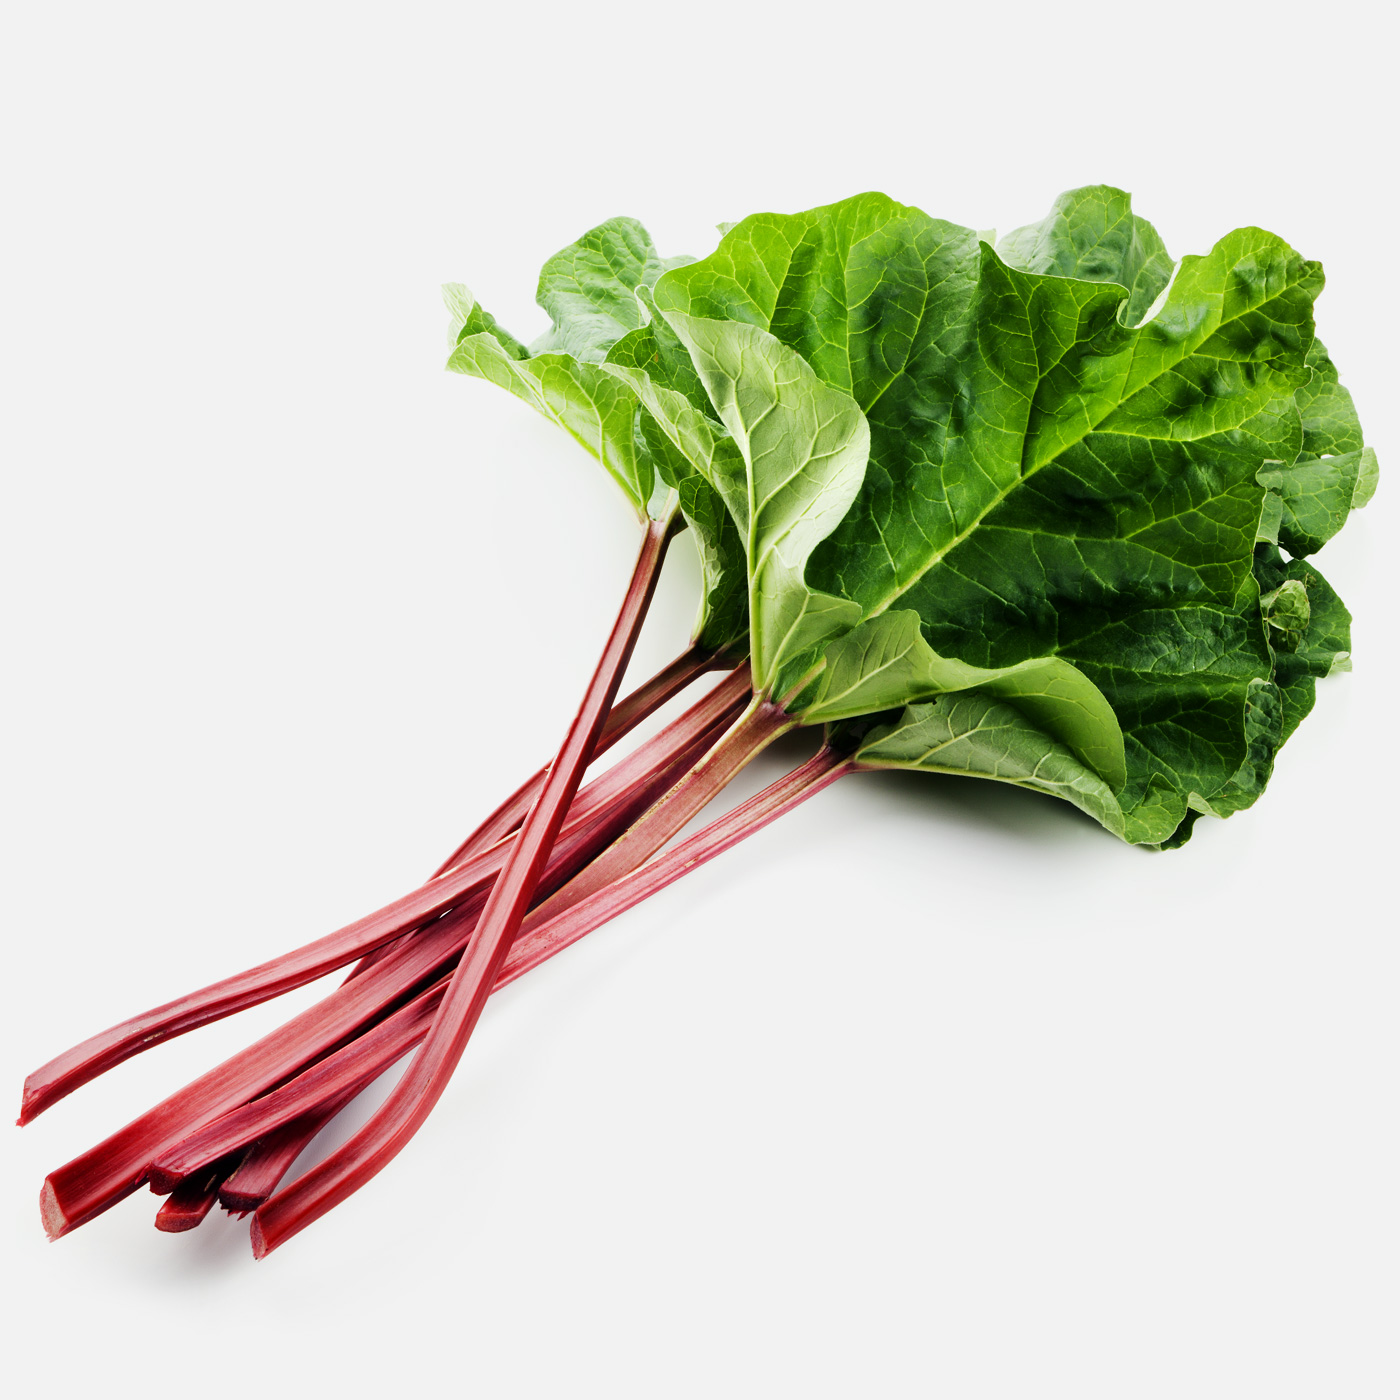 Using rhubarb, unlock the possibilities for flavours, aromas and sweeteners in animal feed and pet food production